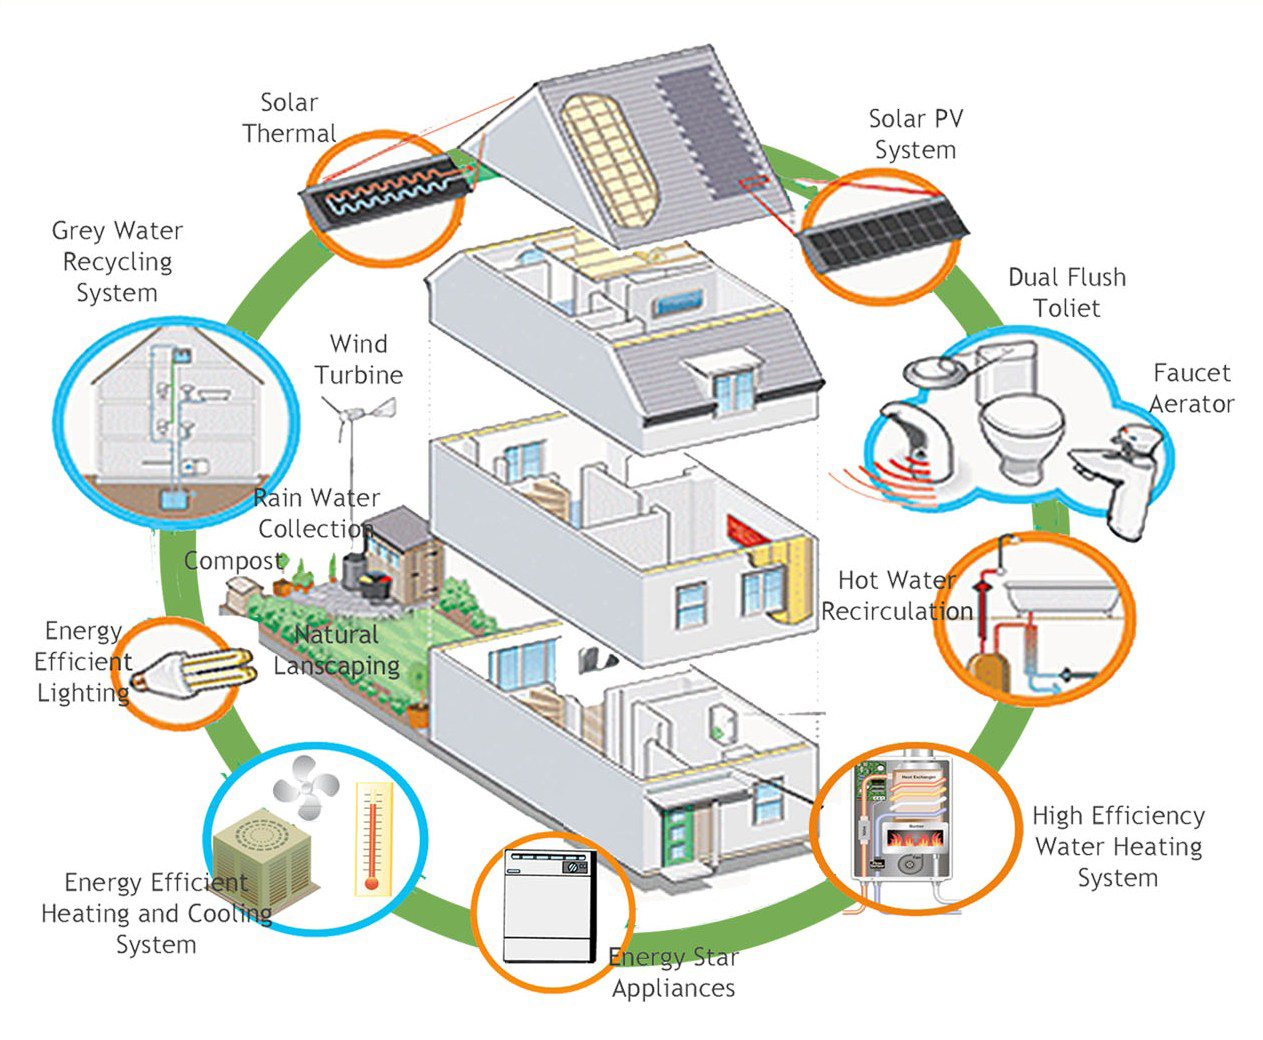 Tips on how you can save energy in your home